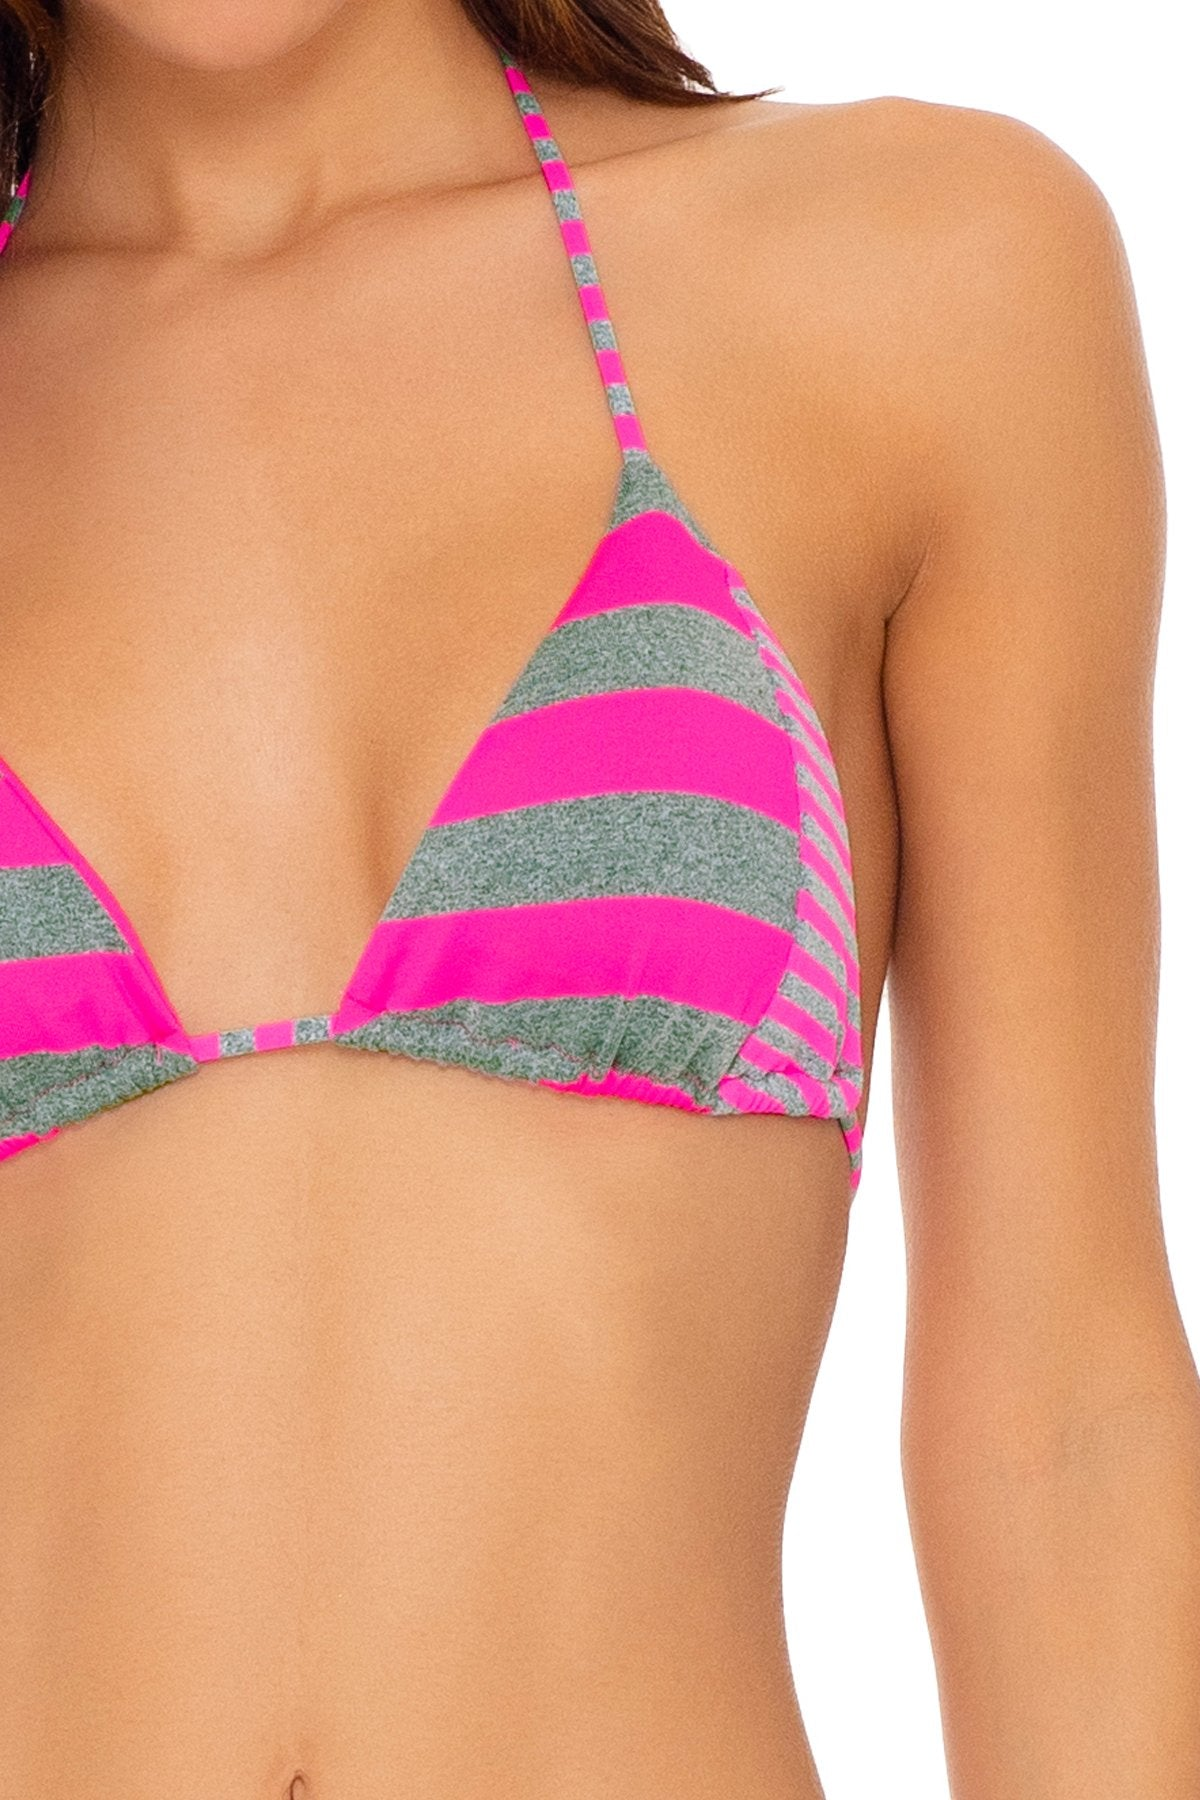 TIME TO FIESTA - Triangle Top & Wavey Ruched Back Tie Side Bottom • Neon Pink